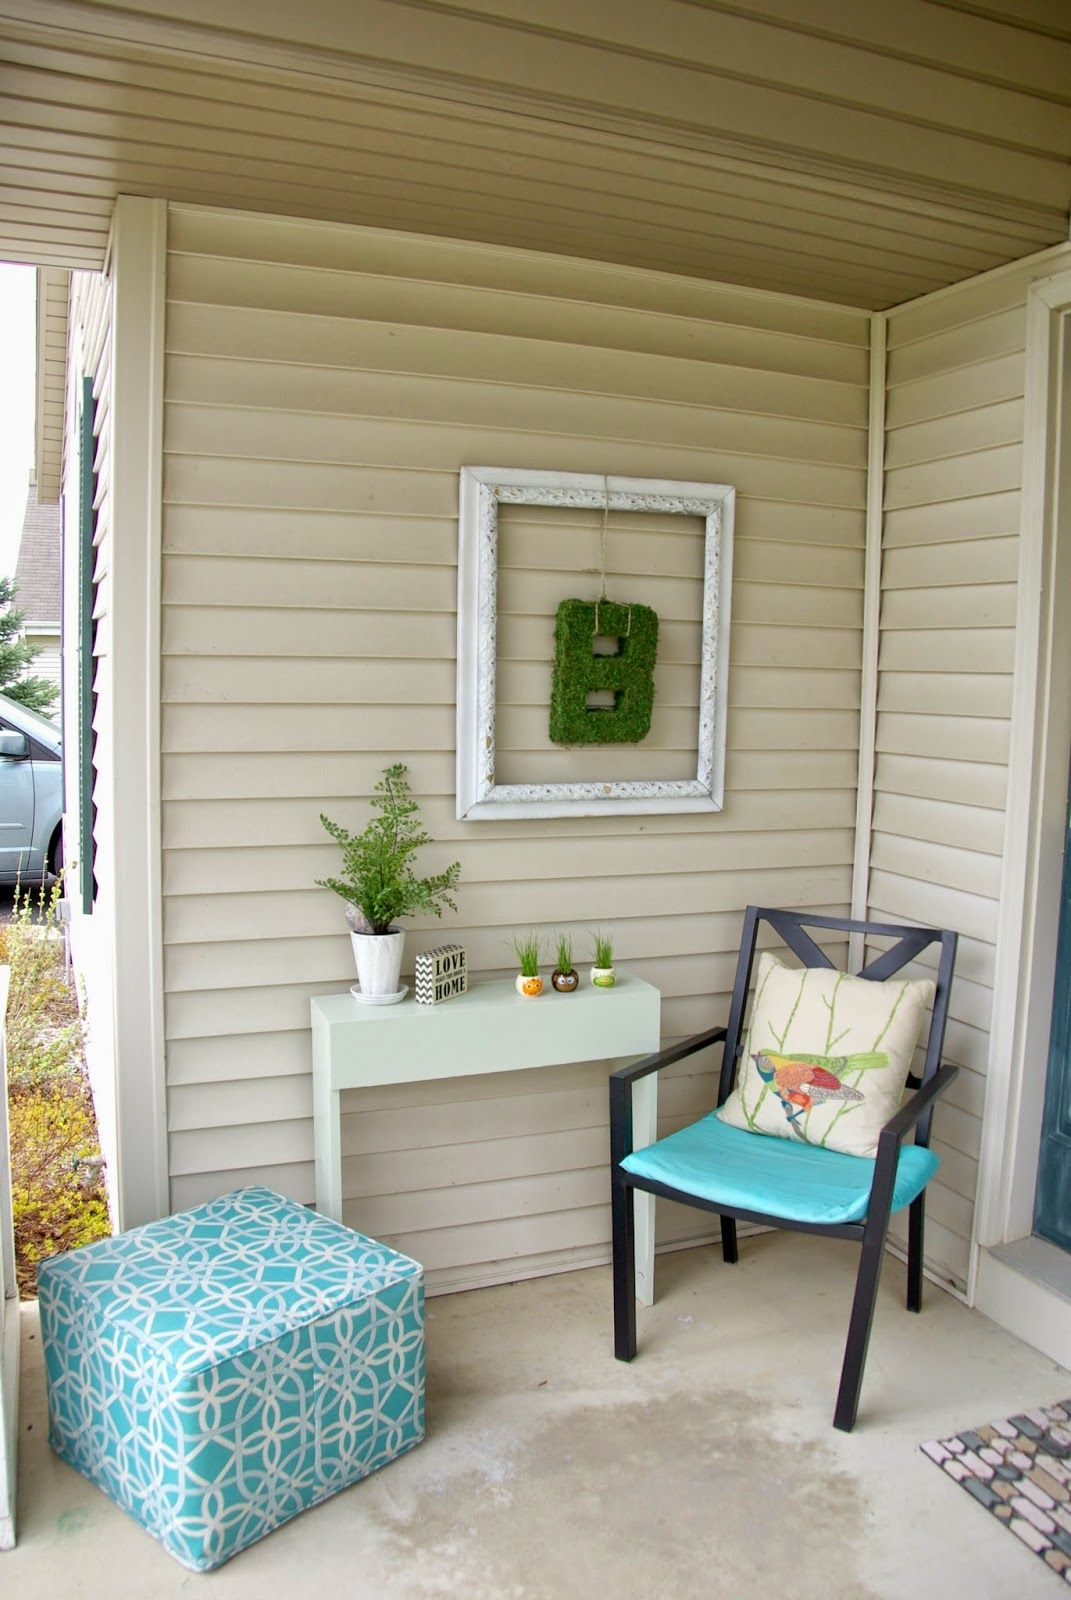 Revamping the front porch summer porch ideas summer for Enclosed porch furniture ideas